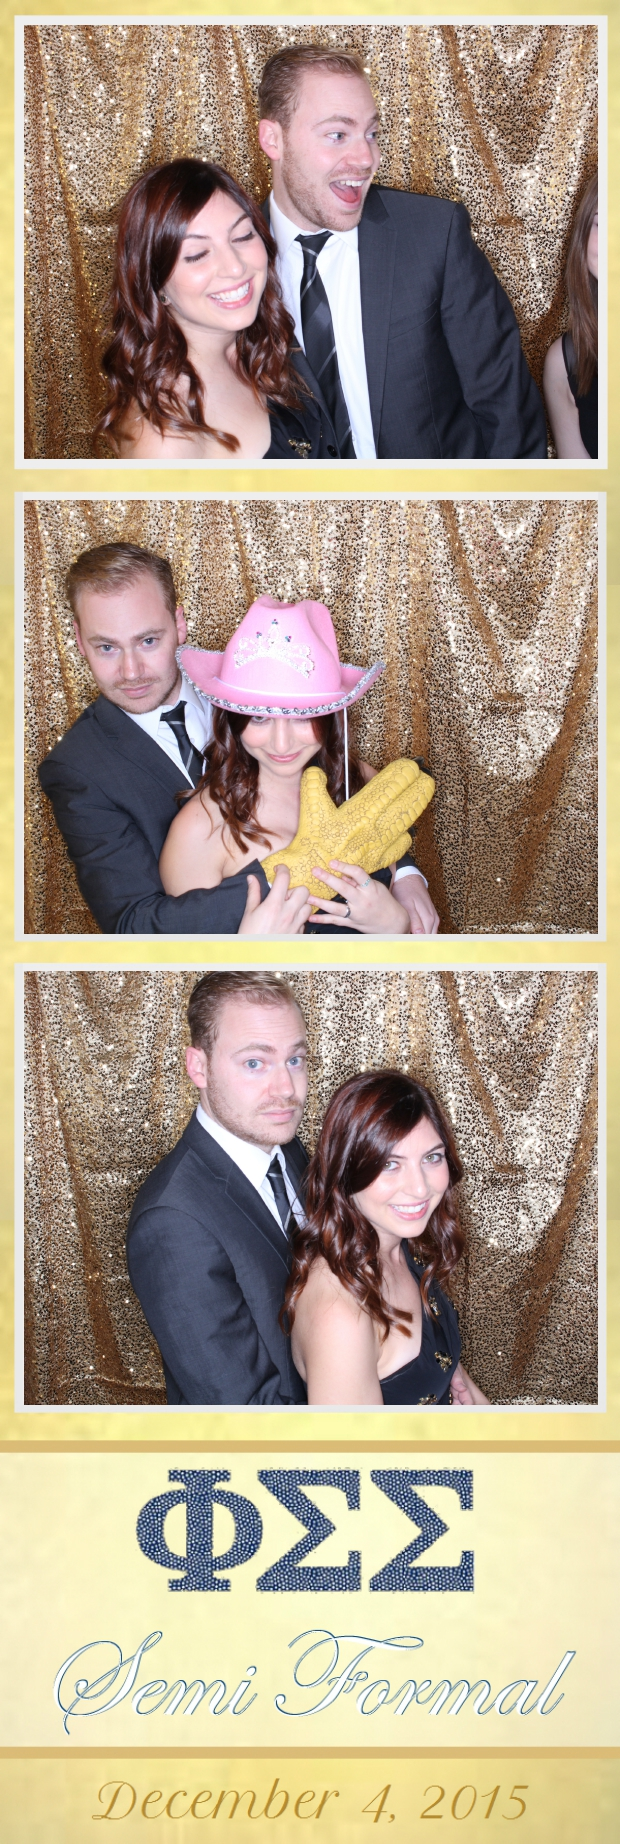 Guest House Events Photo Booth Phi Sigma Sigma Semi Formal (3).jpg